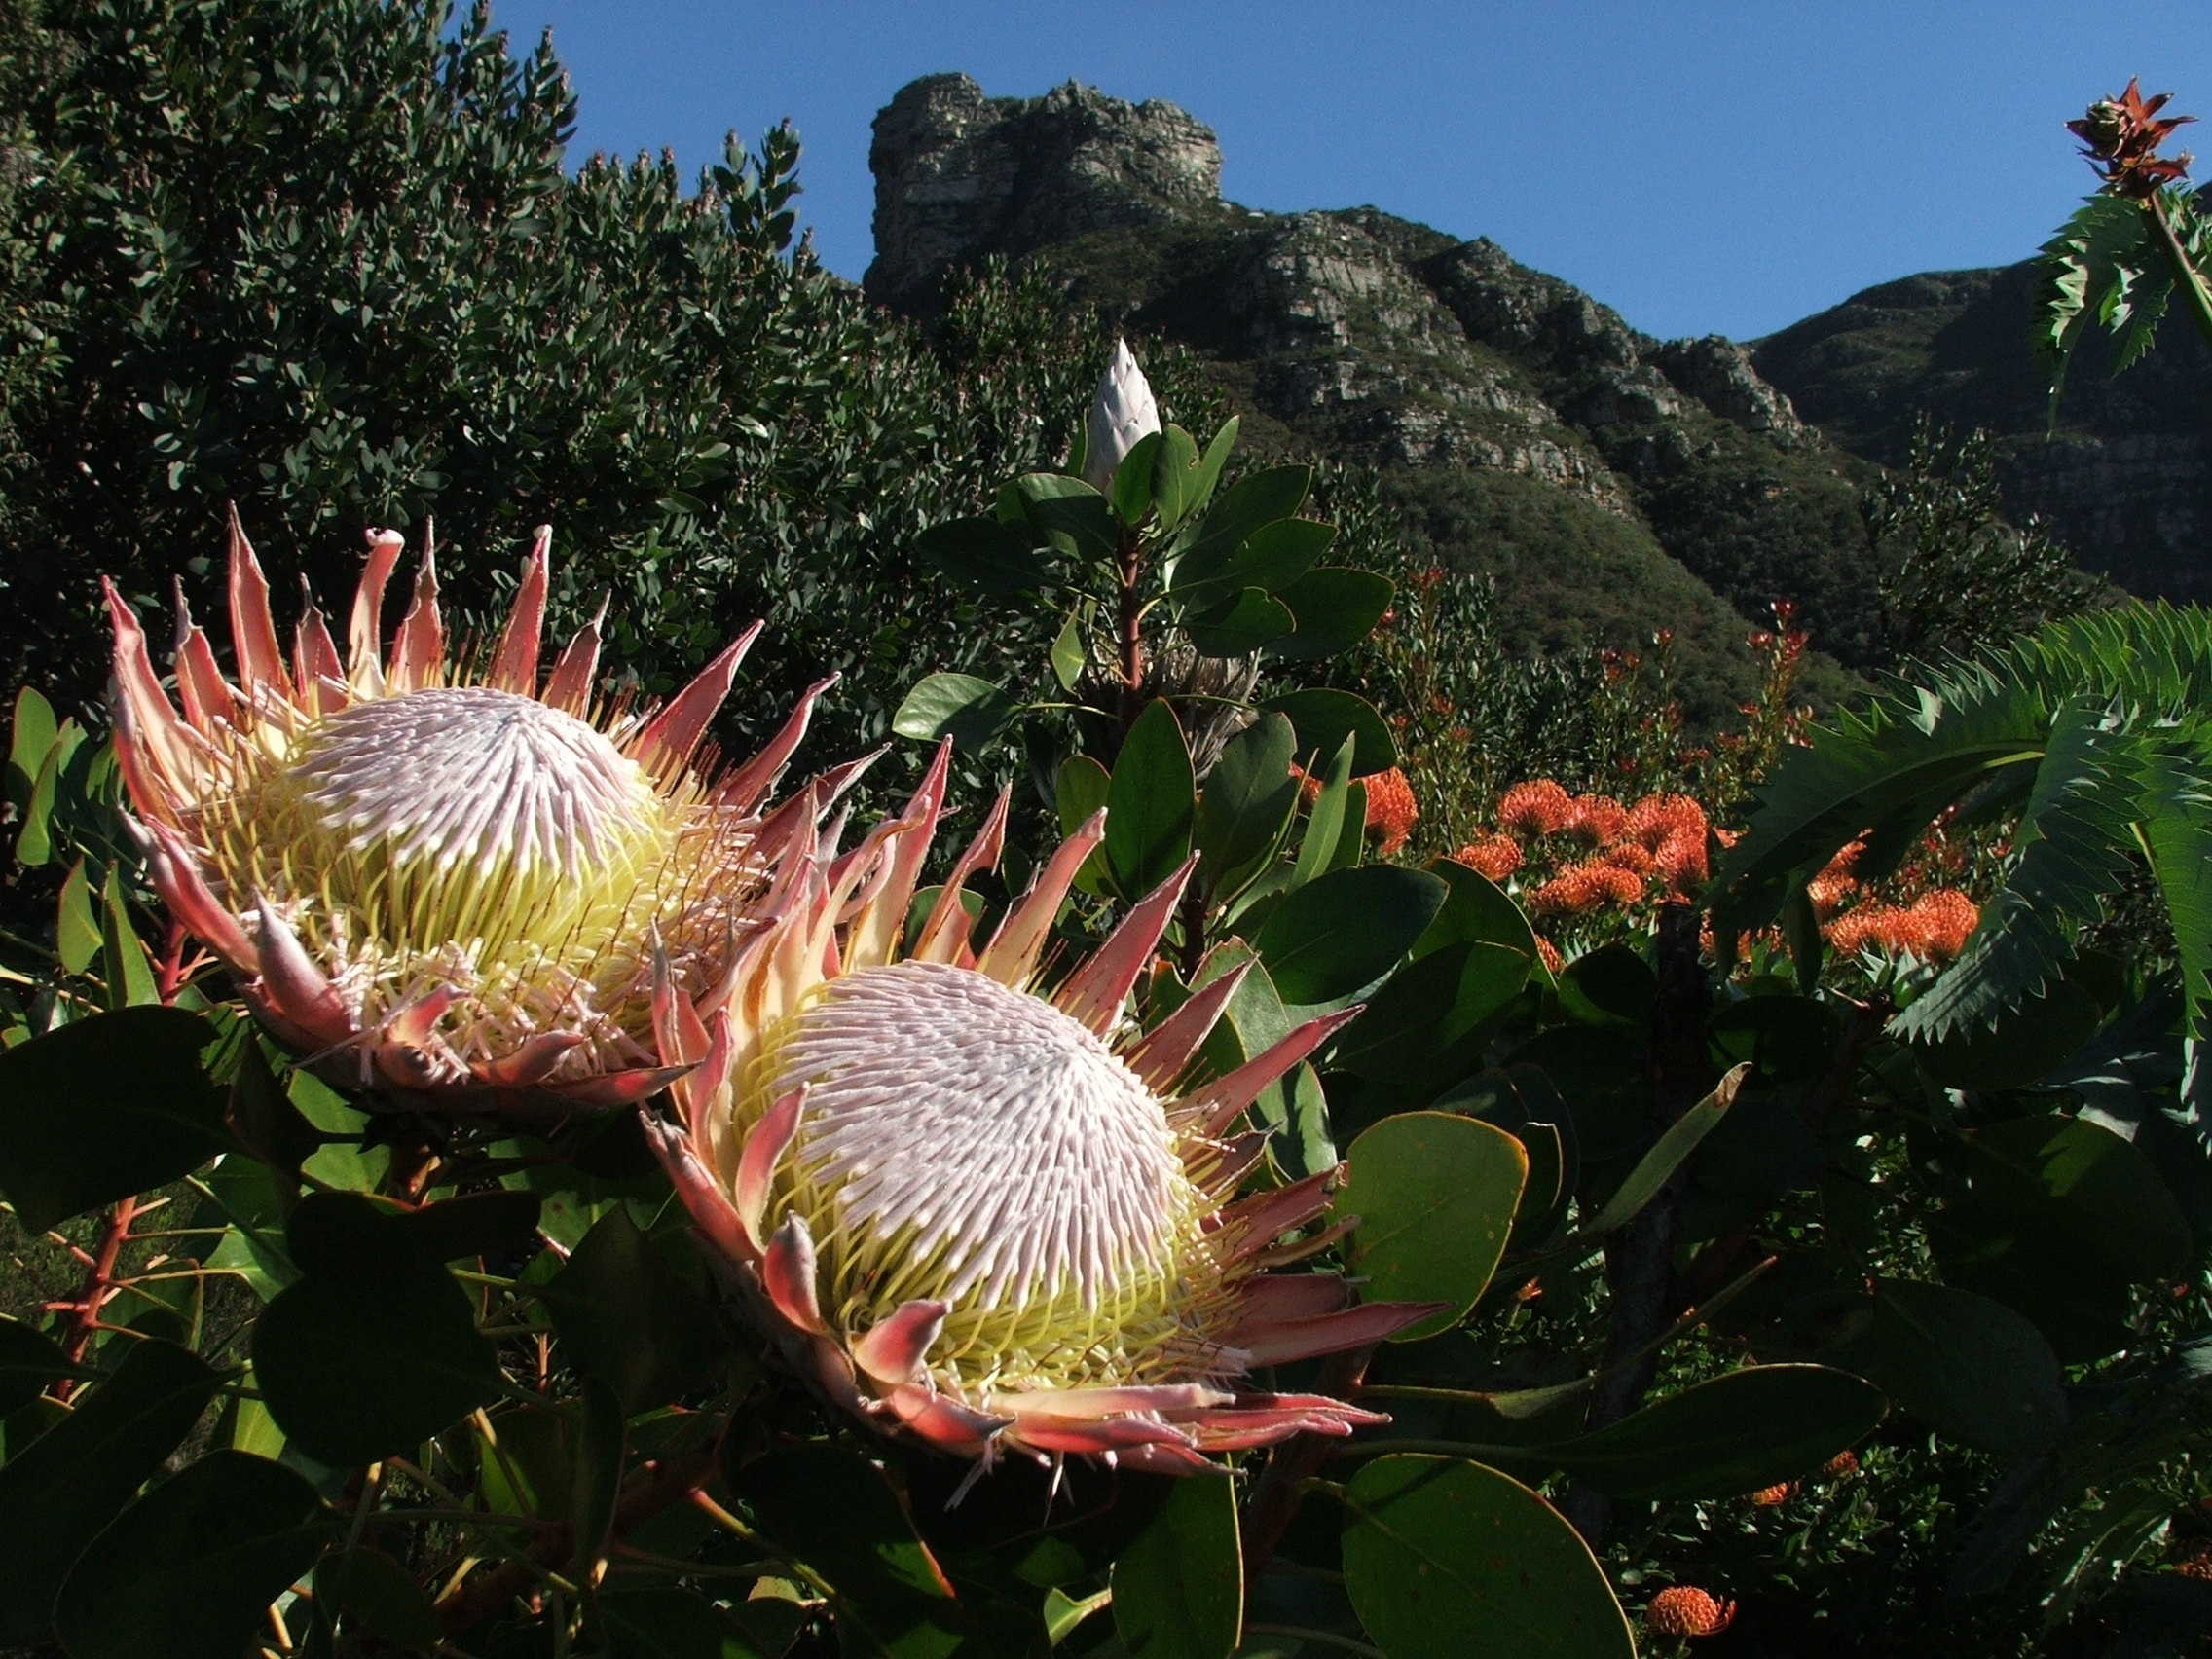 Fynbos, South Africa